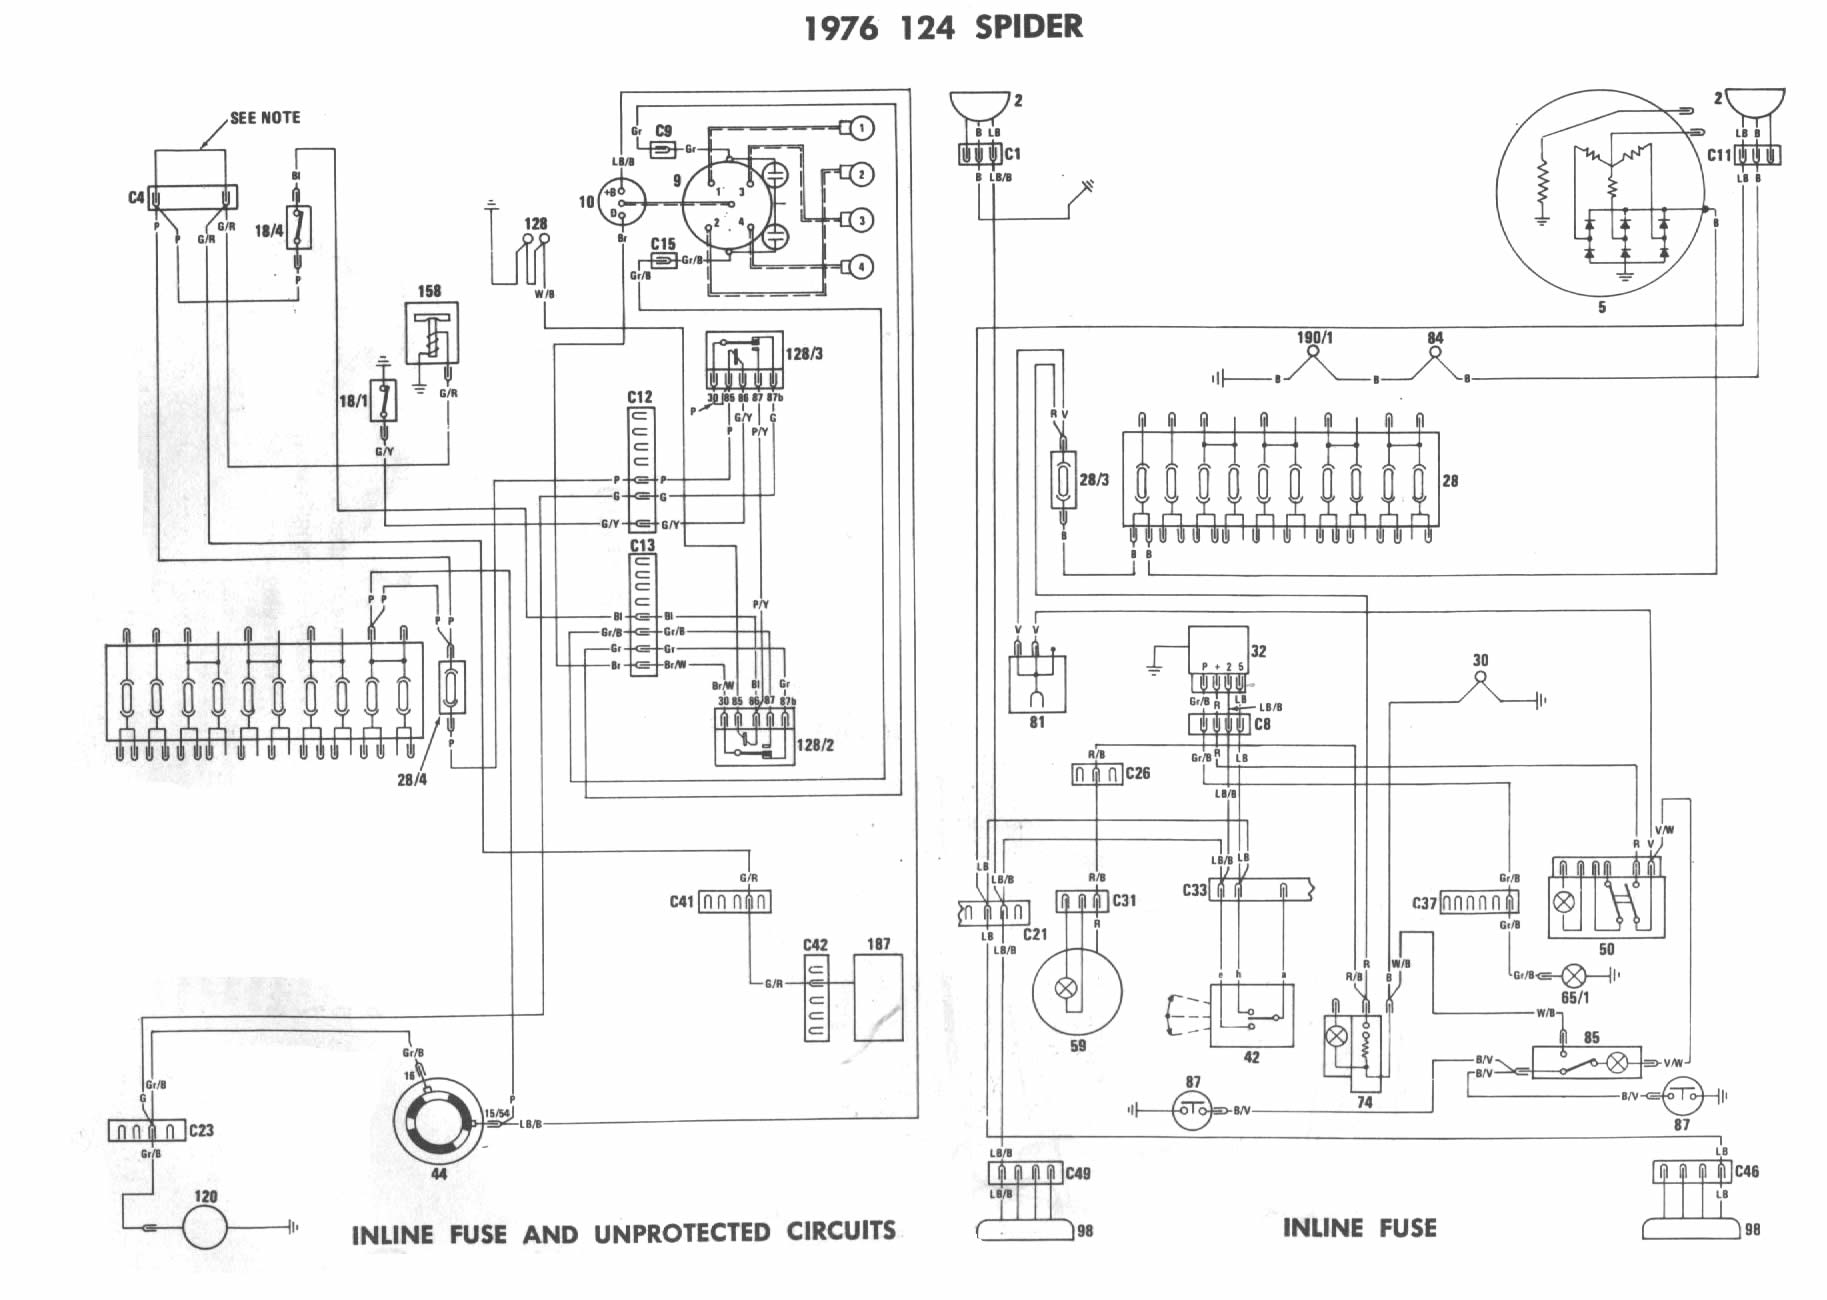 fiat spider 124 wiring diagram manual fiat 124 parts